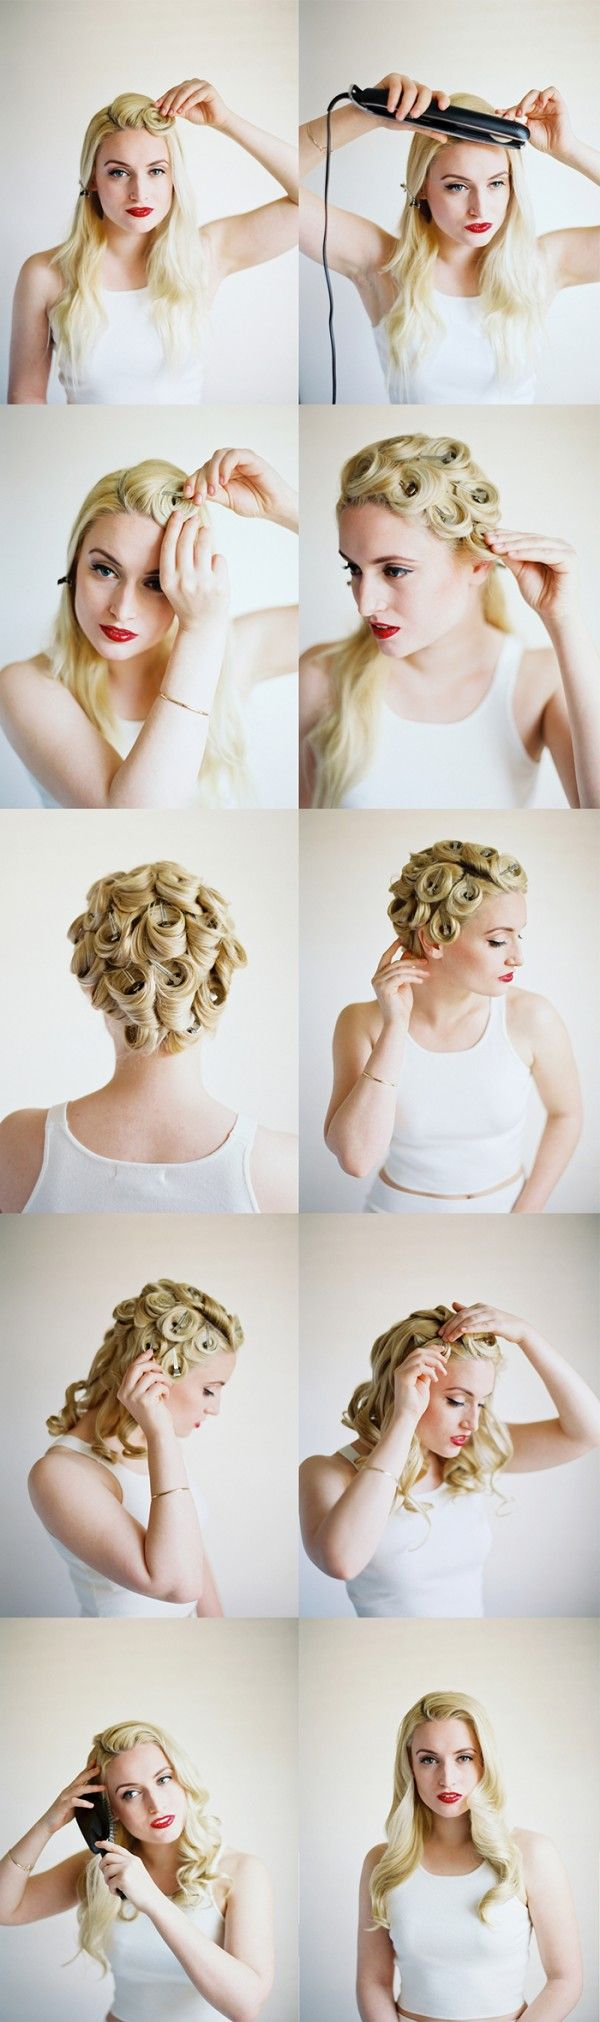 best curling wand tutorial images on pinterest curling wand